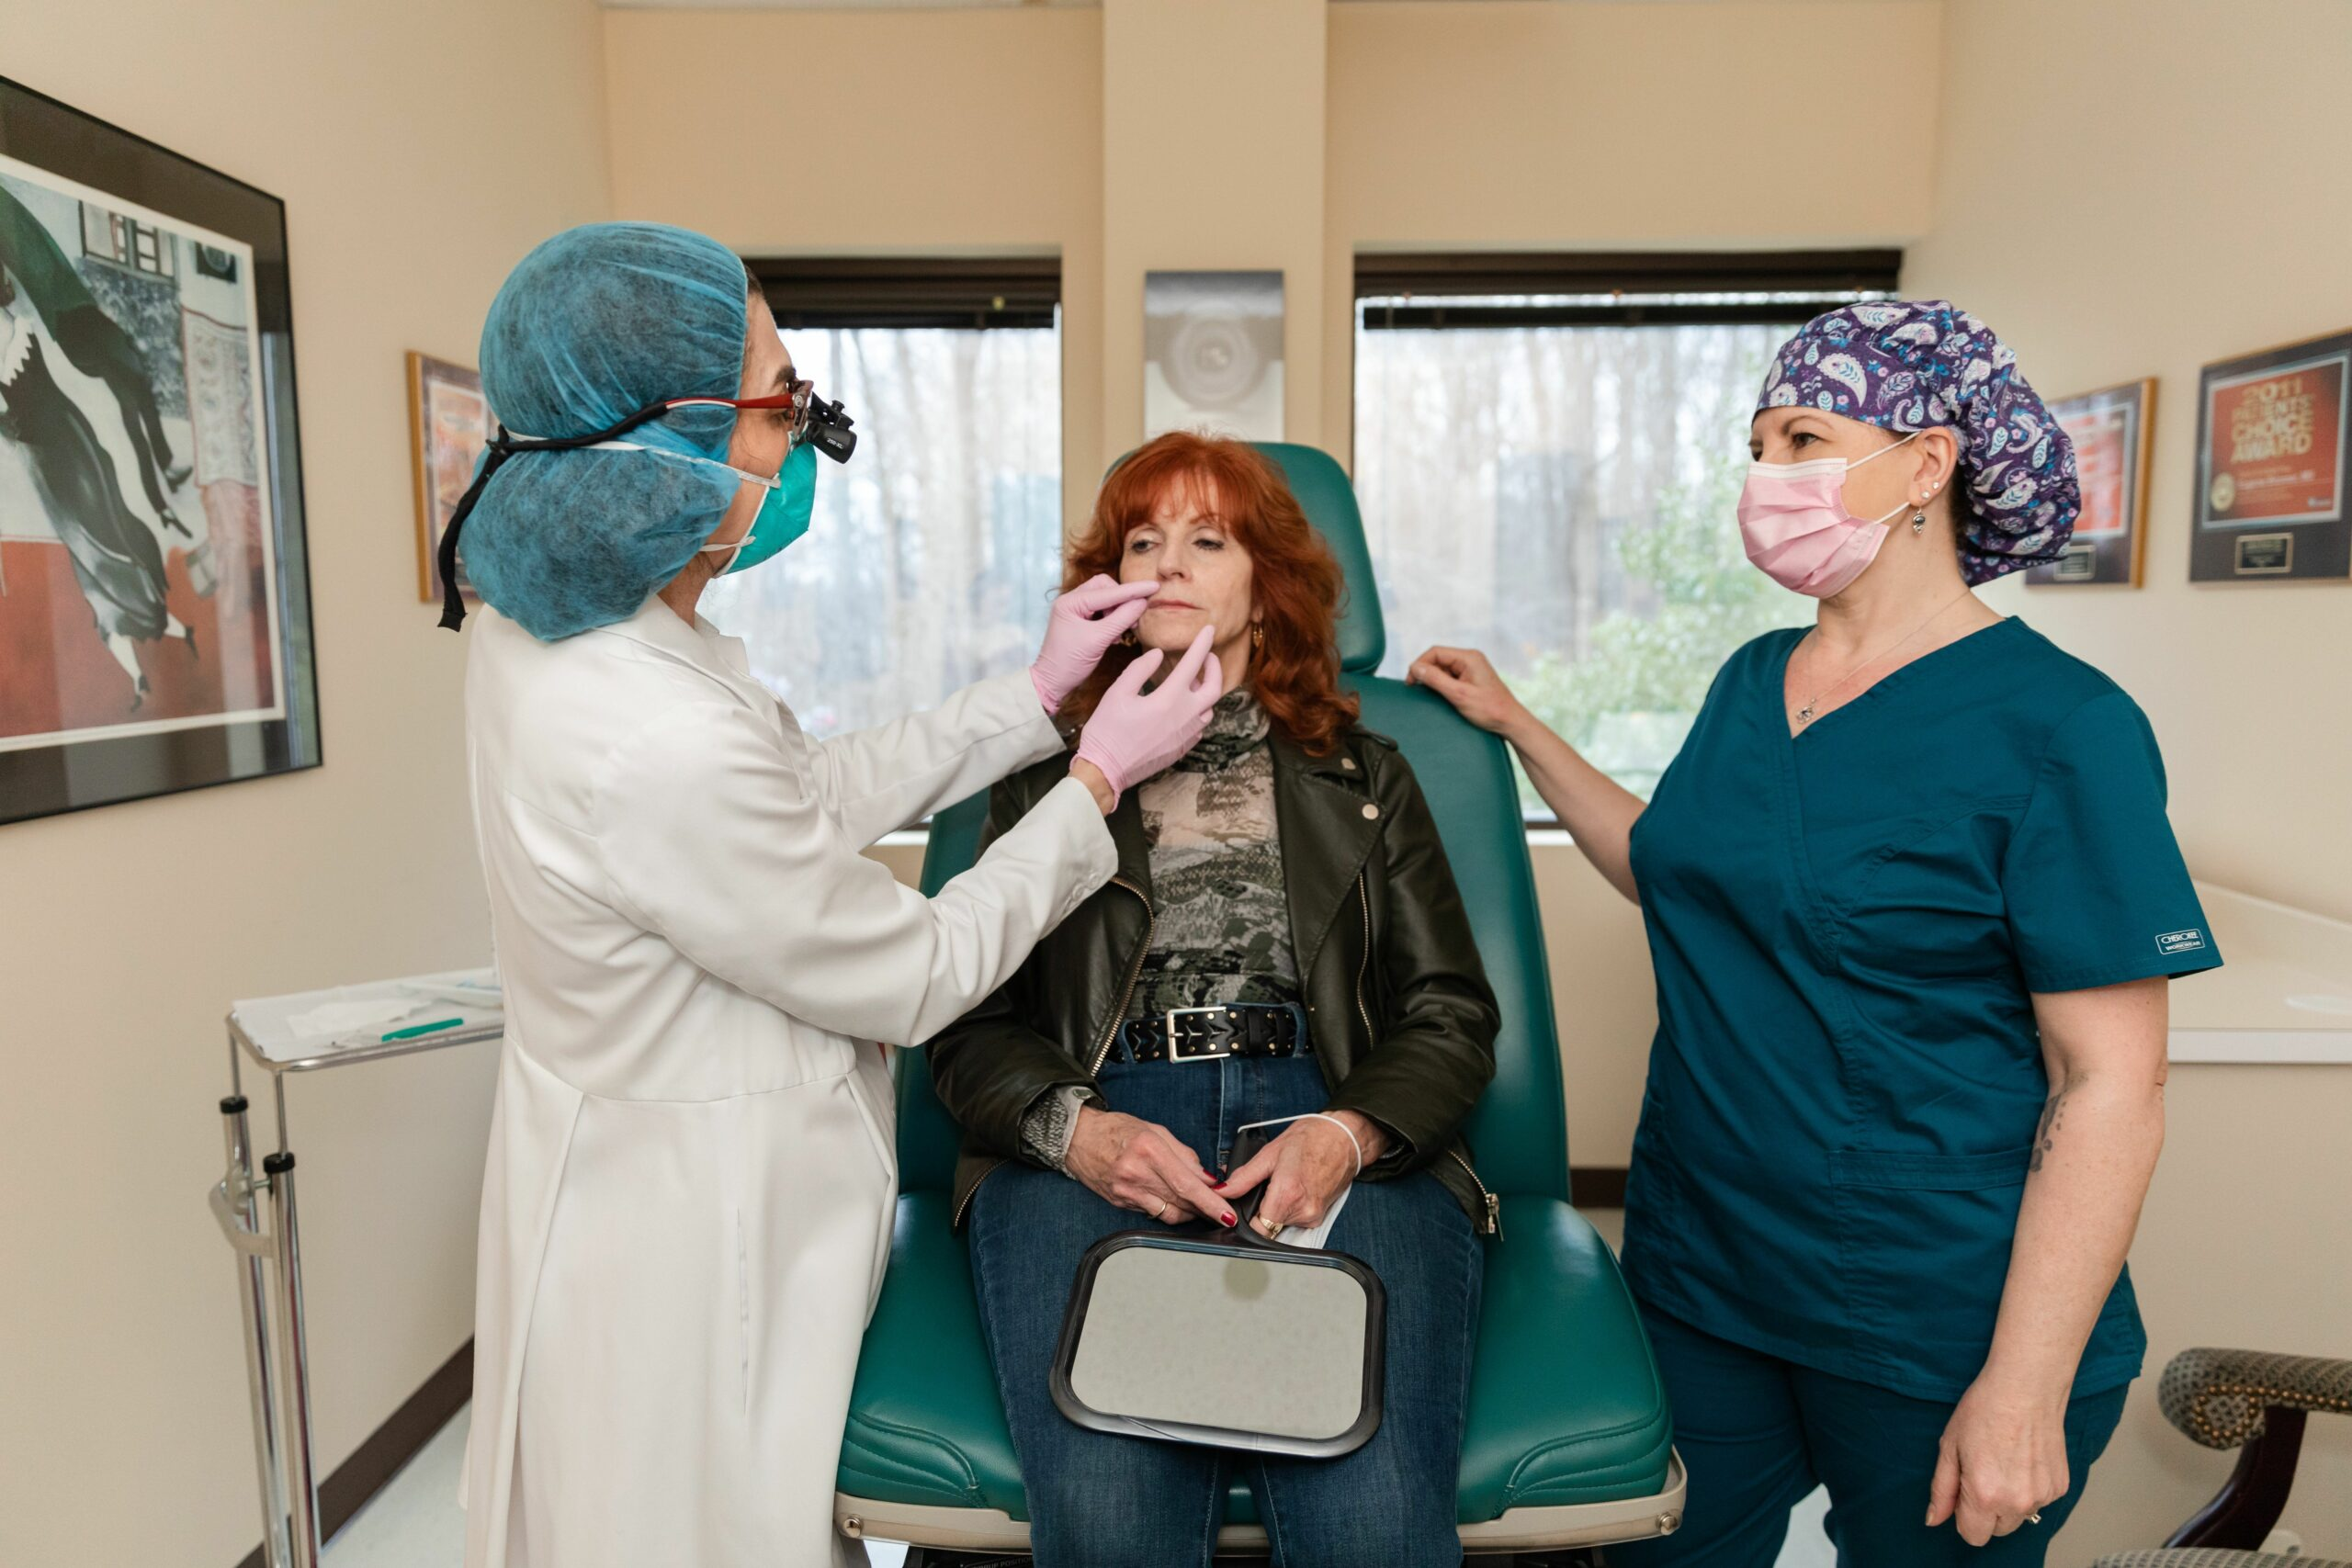 Dr. Brunner giving Botox to a patient in Princeton, NJ